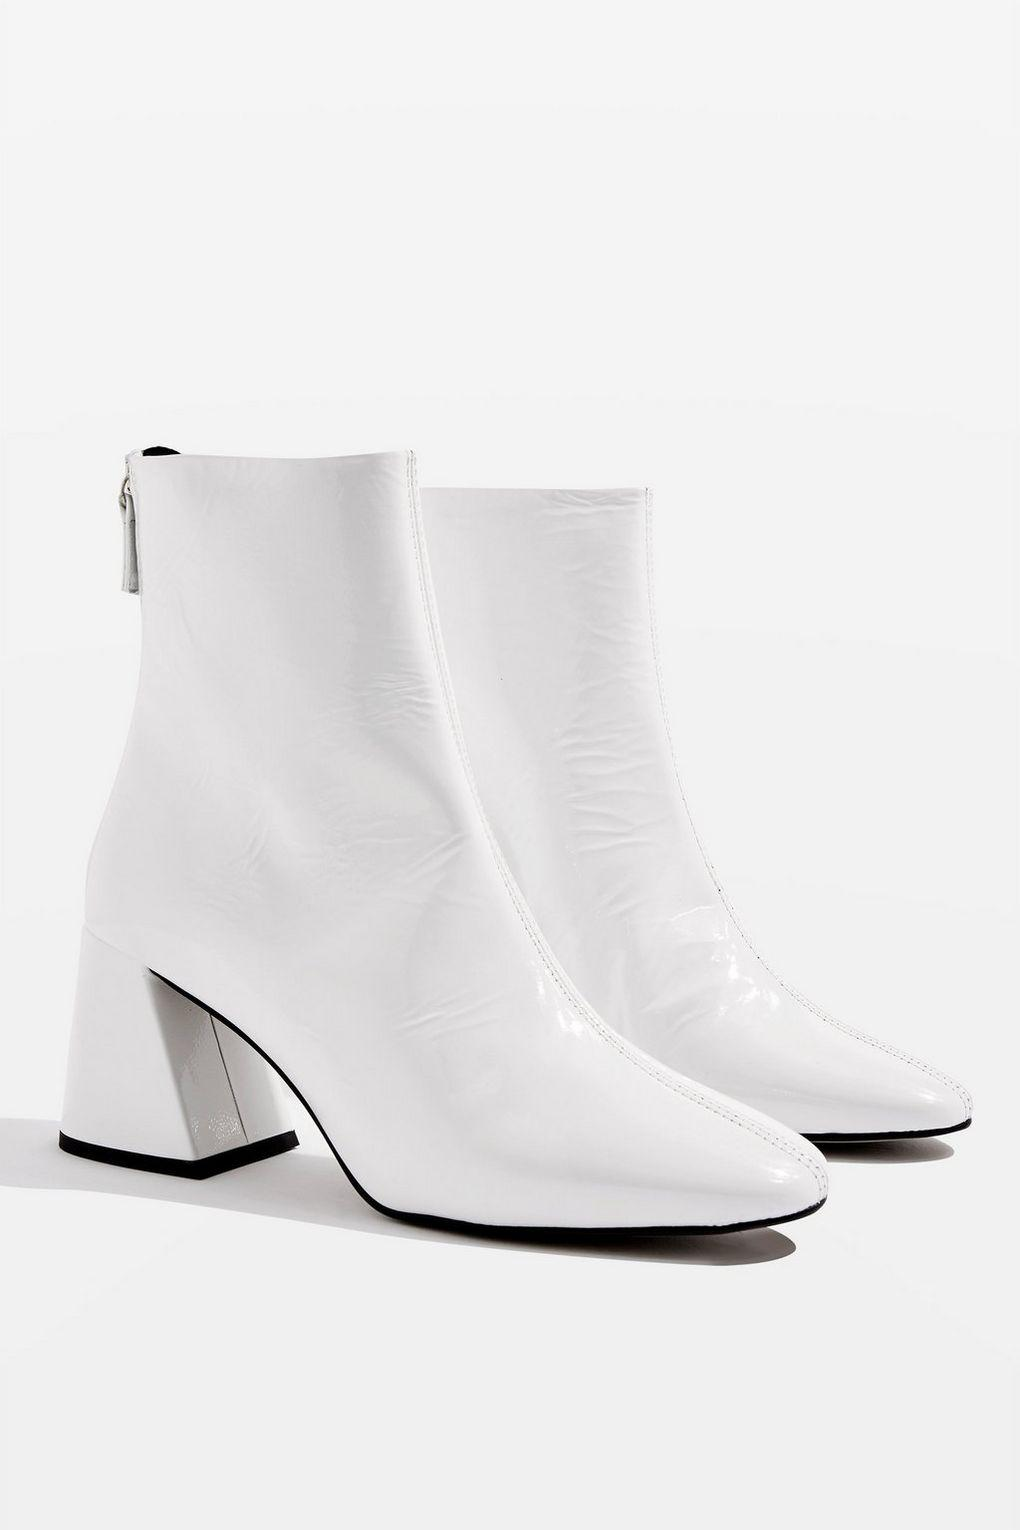 TOPSHOP Leather Marbella Ankle Boots in